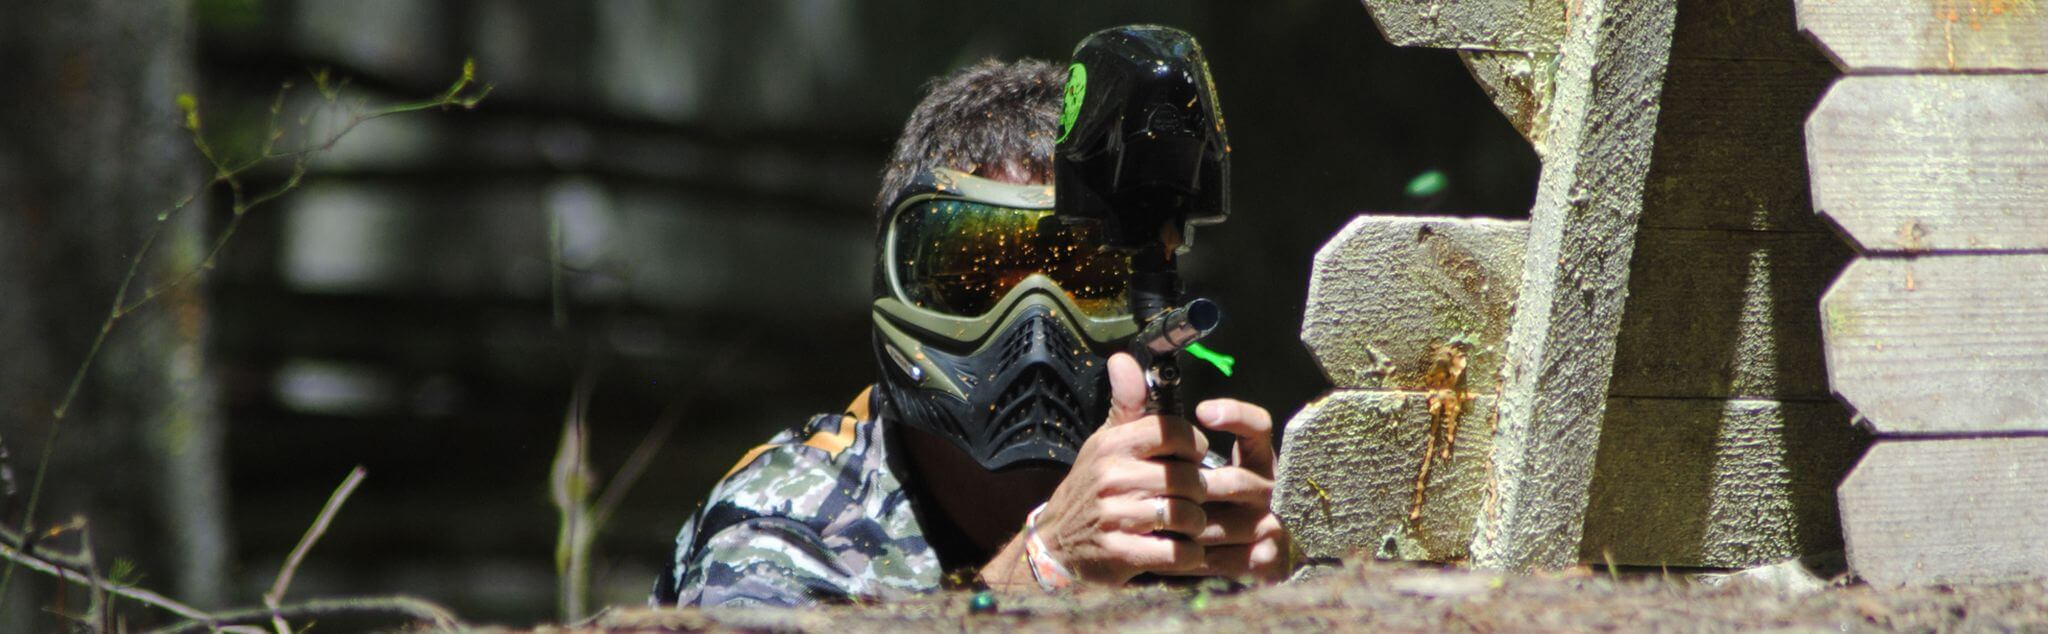 Paintball en Villanova